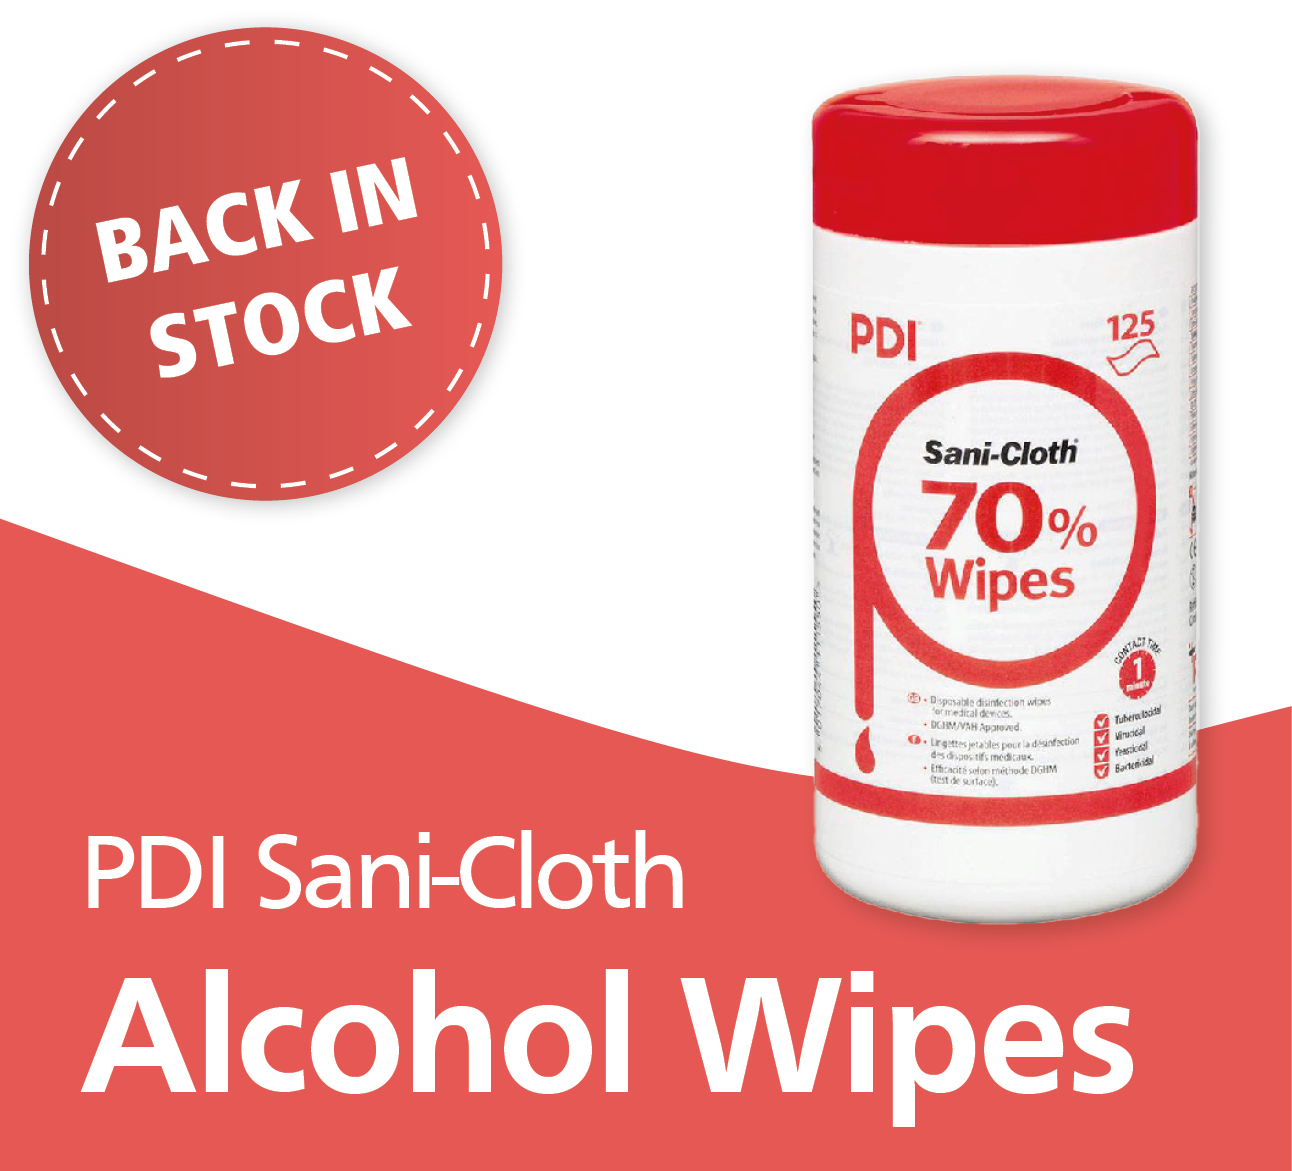 PDI Sani-Cloth Alcohol Wipes